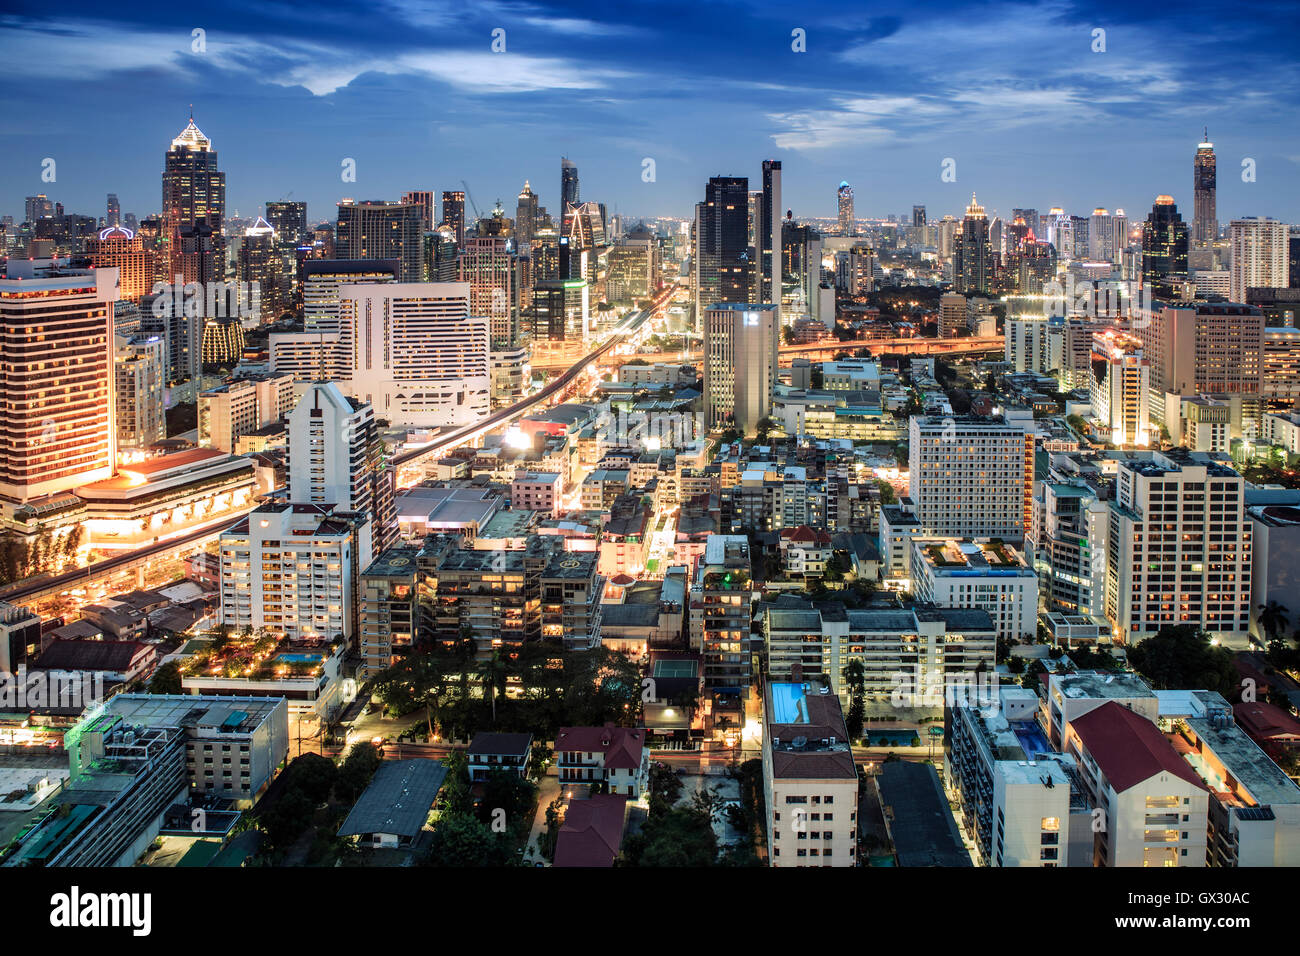 Bangkok city skyline at night - ligne de train Skytrain et principale zone touristique autour de Sukhumvit montrant Photo Stock